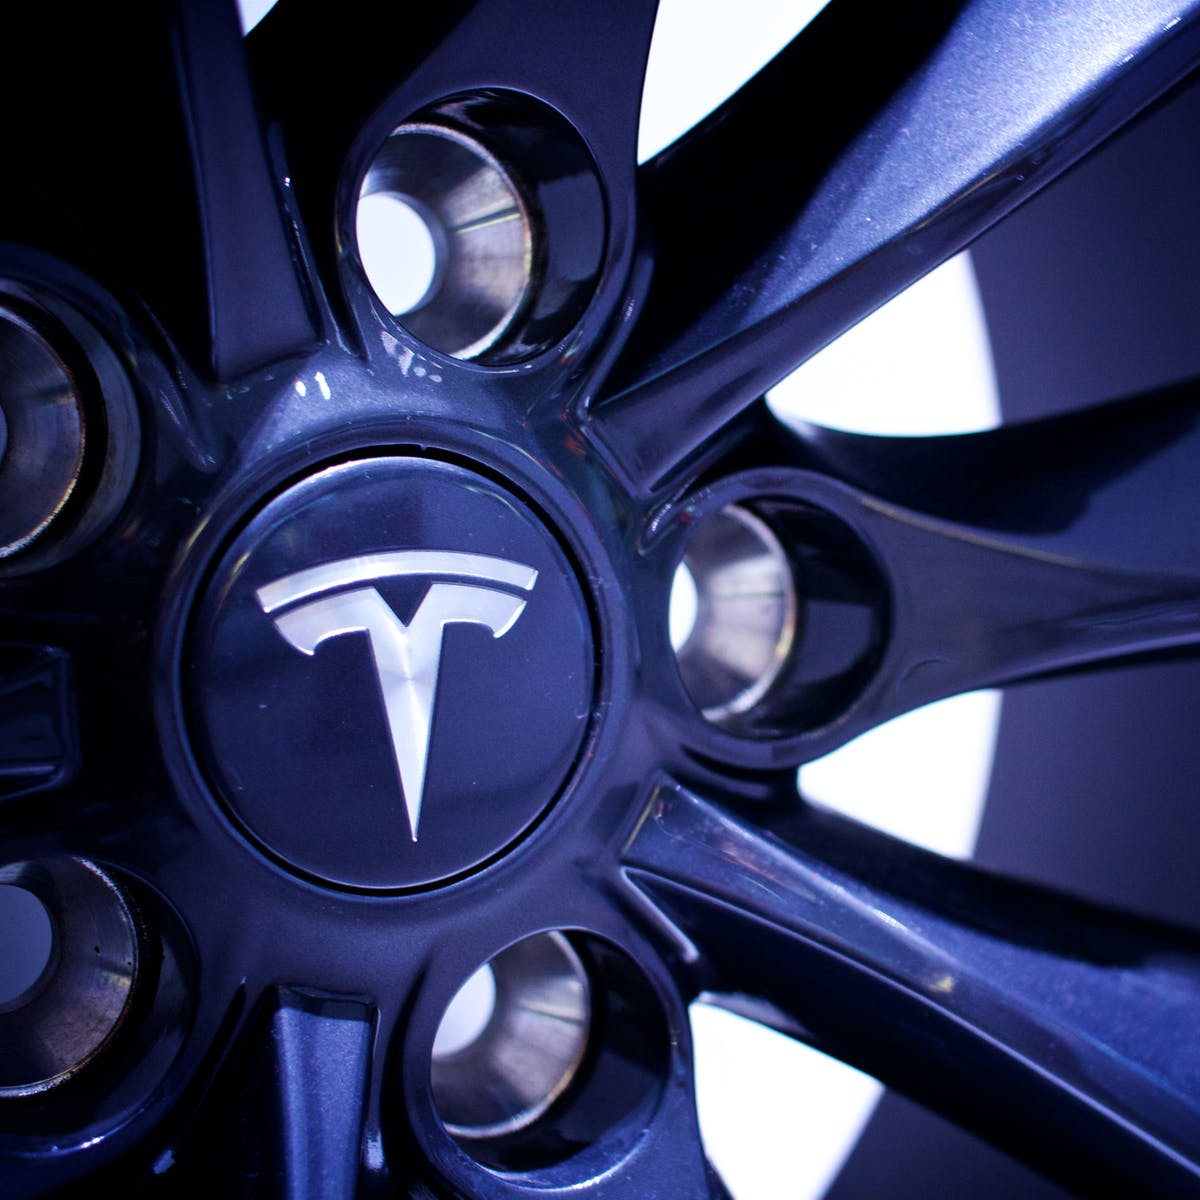 Tesla Earnings Call: 3 Key Questions for Elon Musk's Pre-Pickup Truck Call